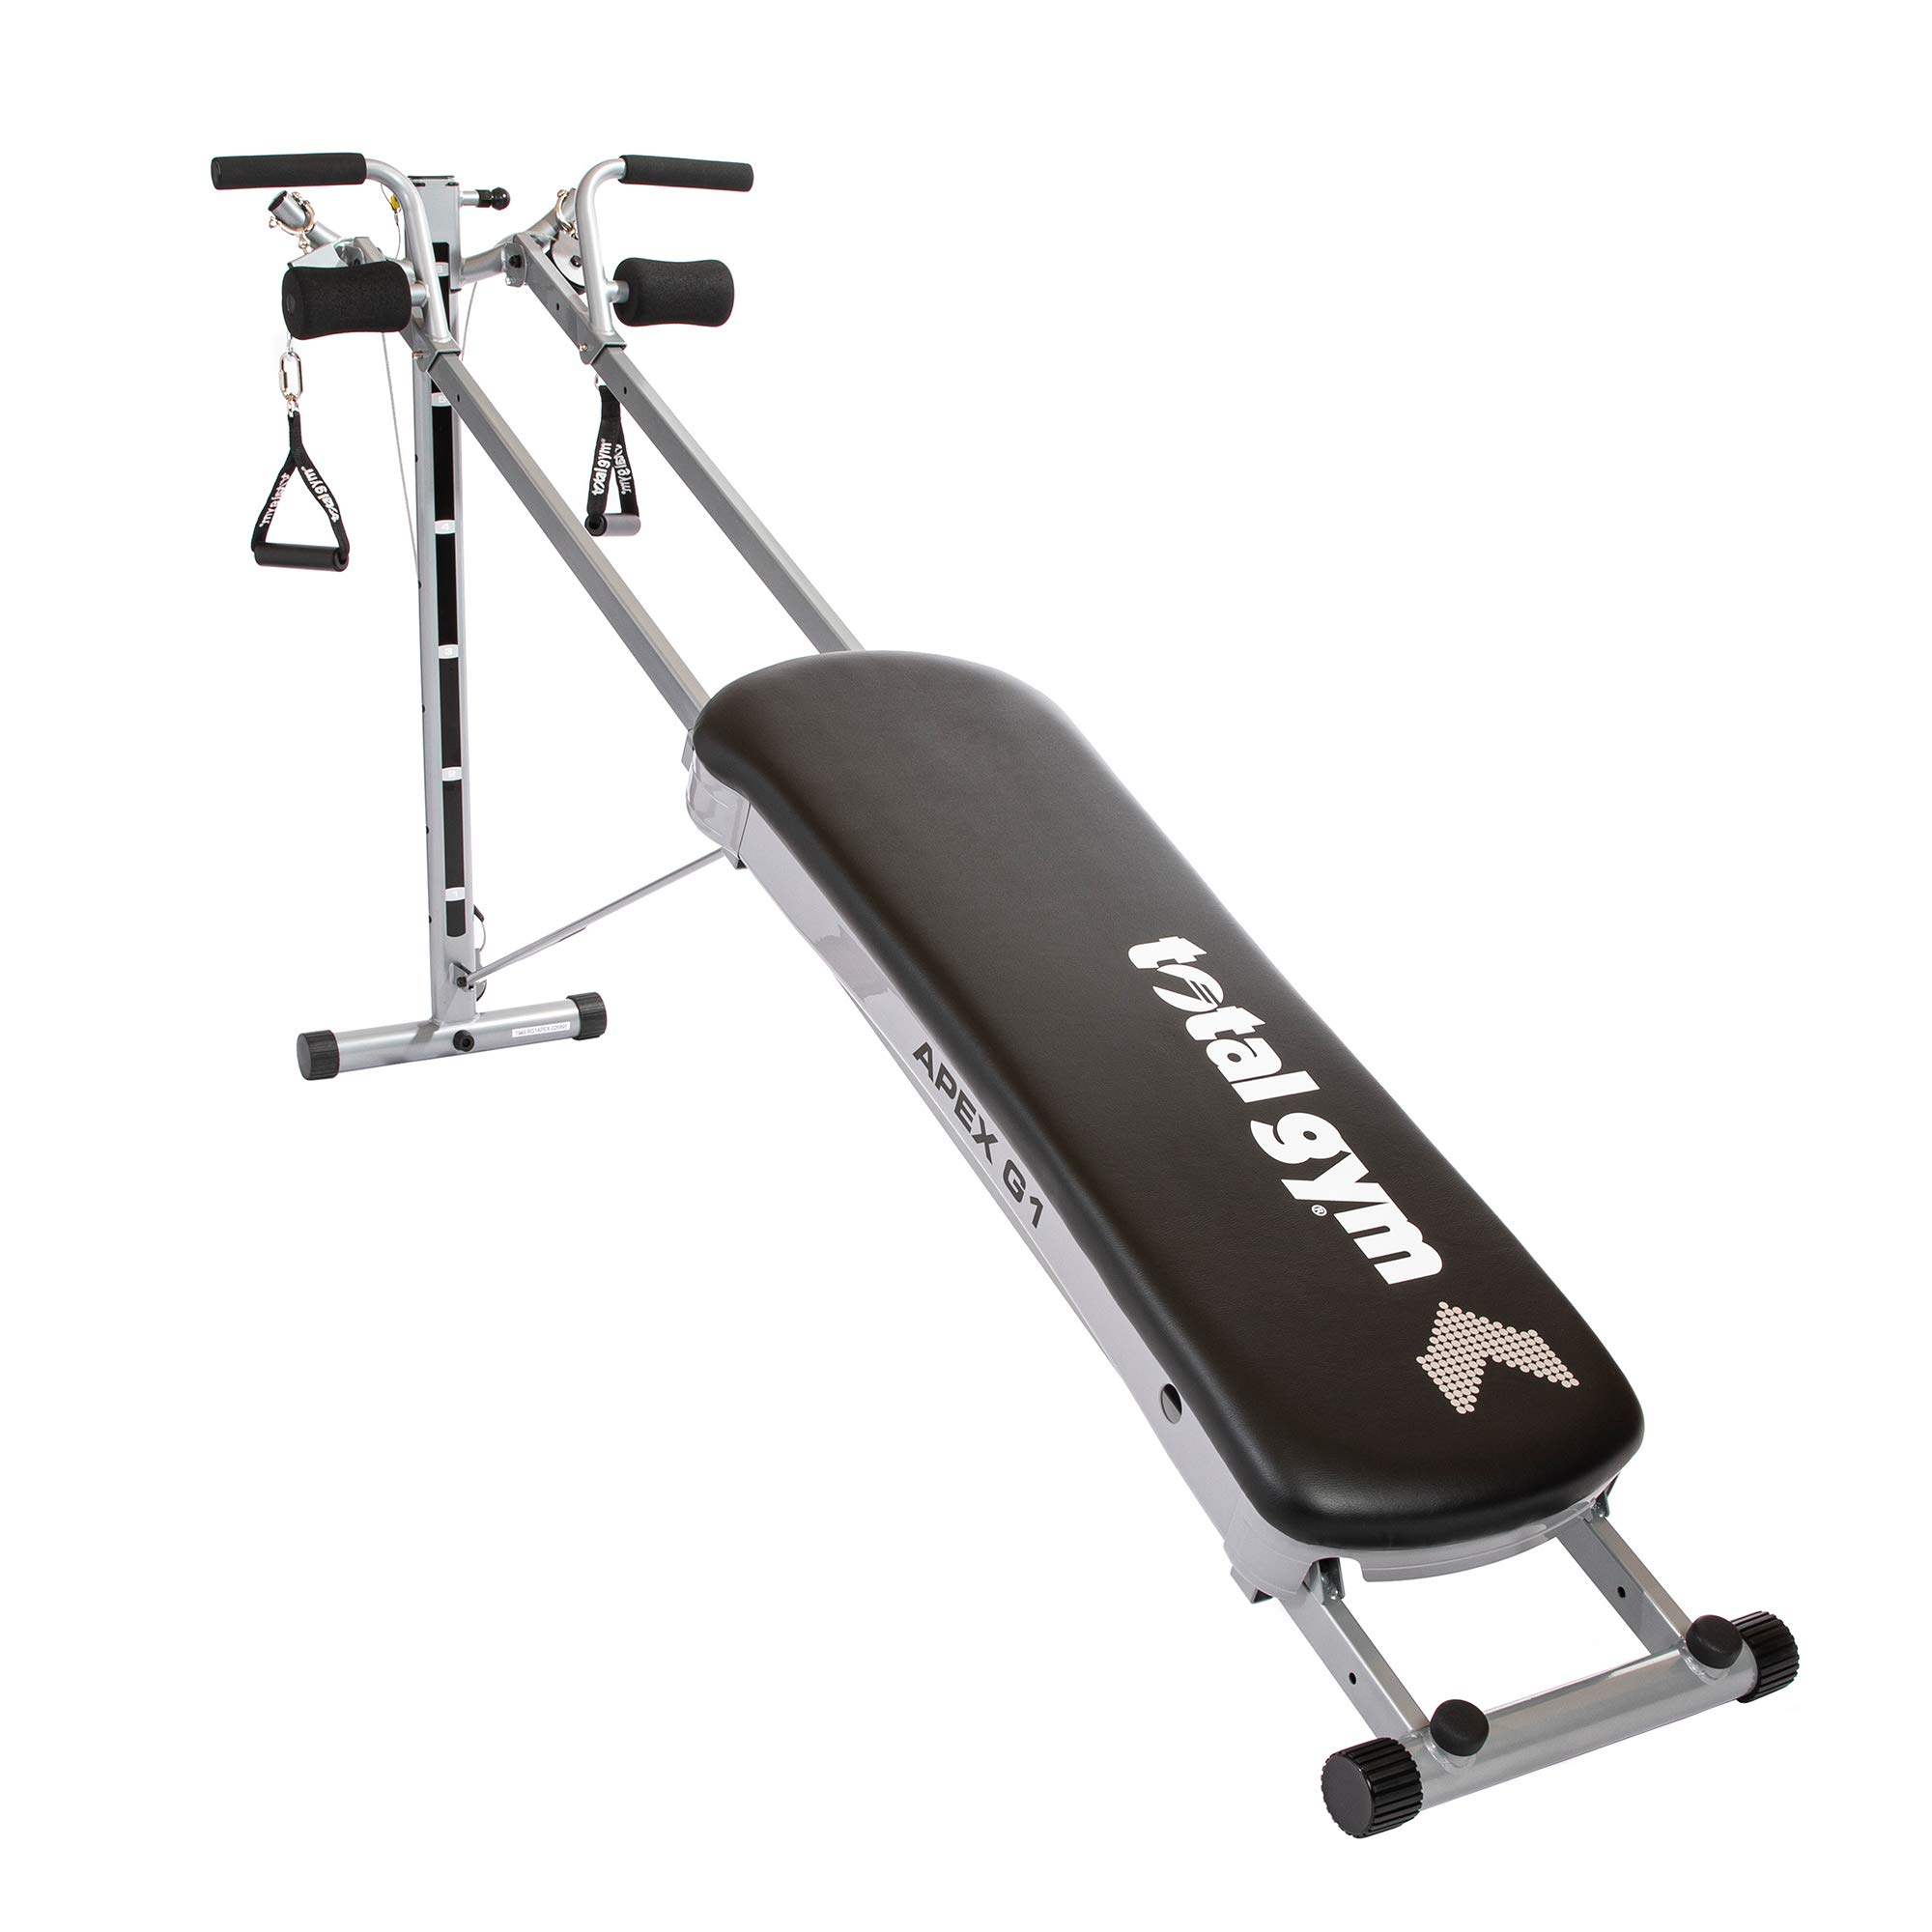 Total Gym APEX Versatile Indoor Home Workout Total Body Strength Training Fitness Equipment with up to 10 Levels of Resistance and Attachments